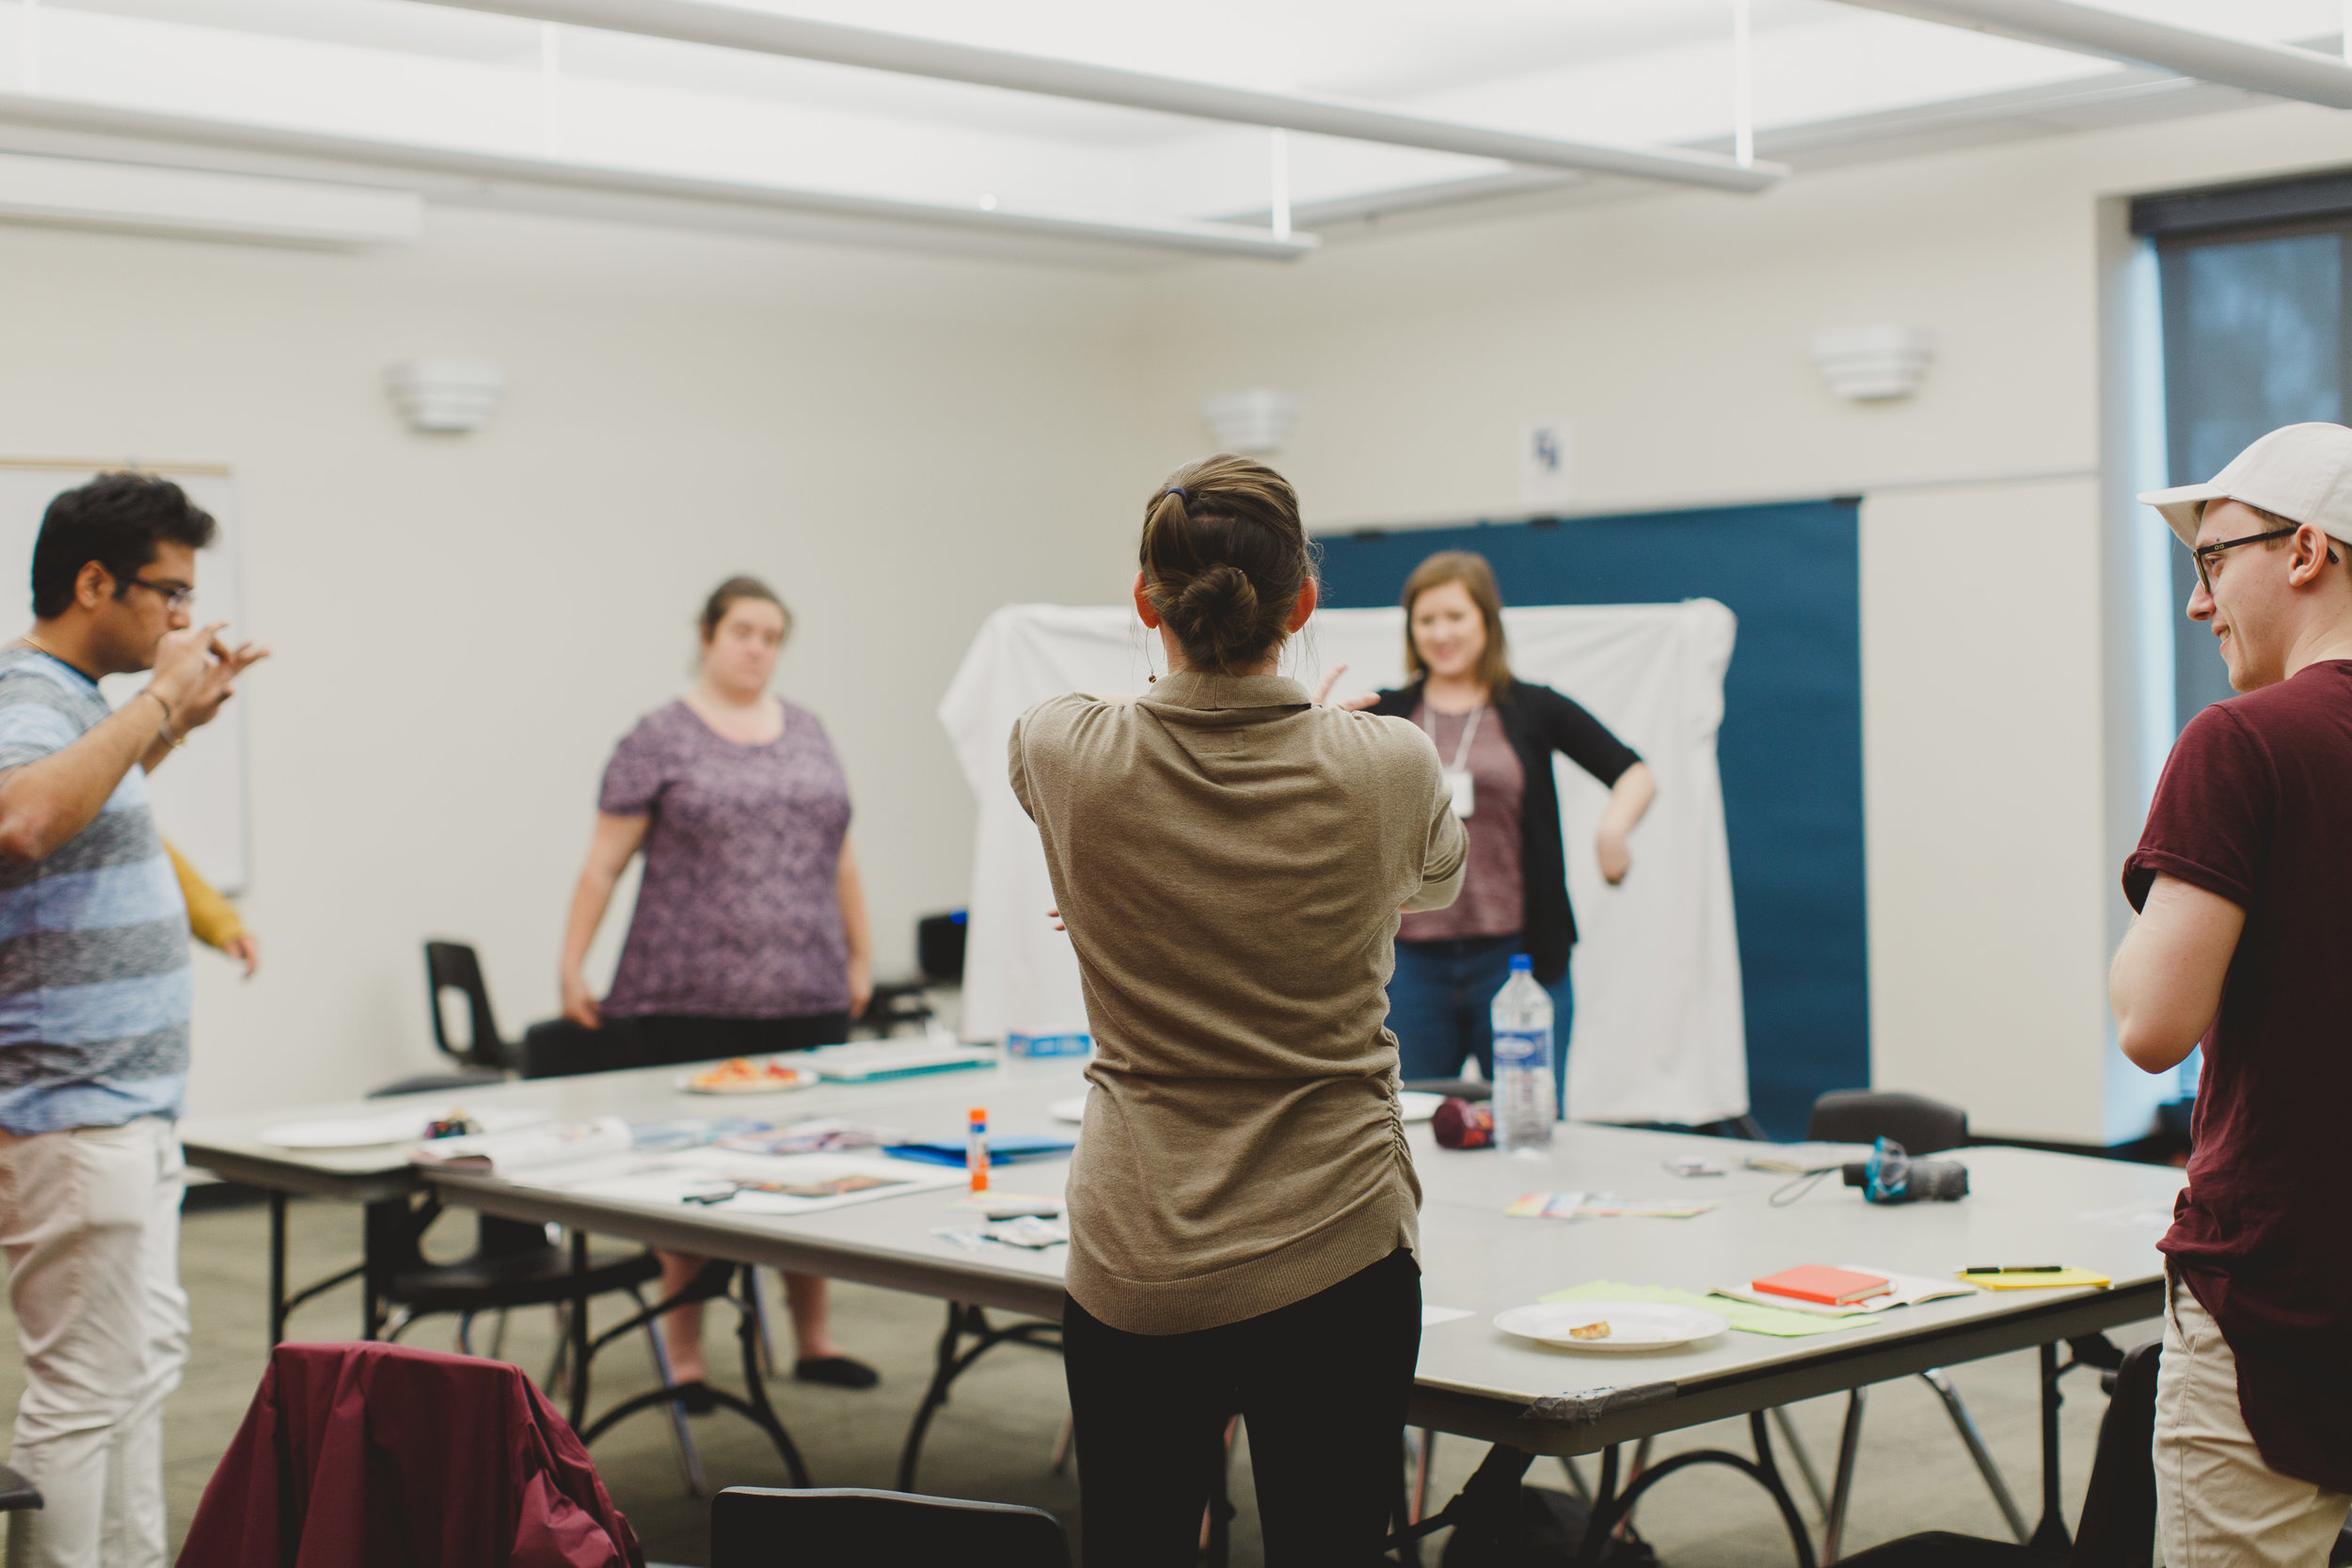 art-not-shame-annual-report-fuck-perfect-workshops-guelph-mental-health-51.JPG